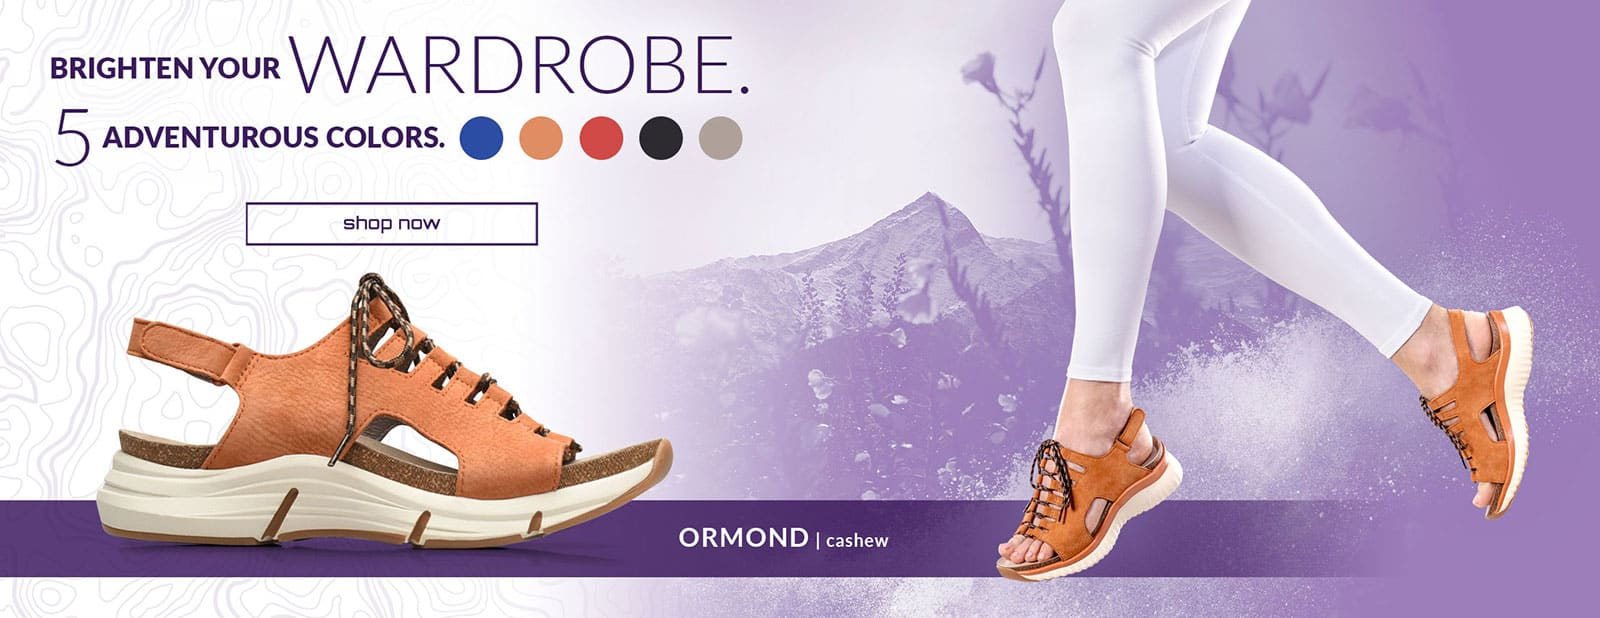 Brighten Your Wardrobe. 5 Adventurous Colors. Shop Now. ORMOND in cashew. Shop Ormond Sandal. Available in Blue, Tan, Red, Black and Gray.